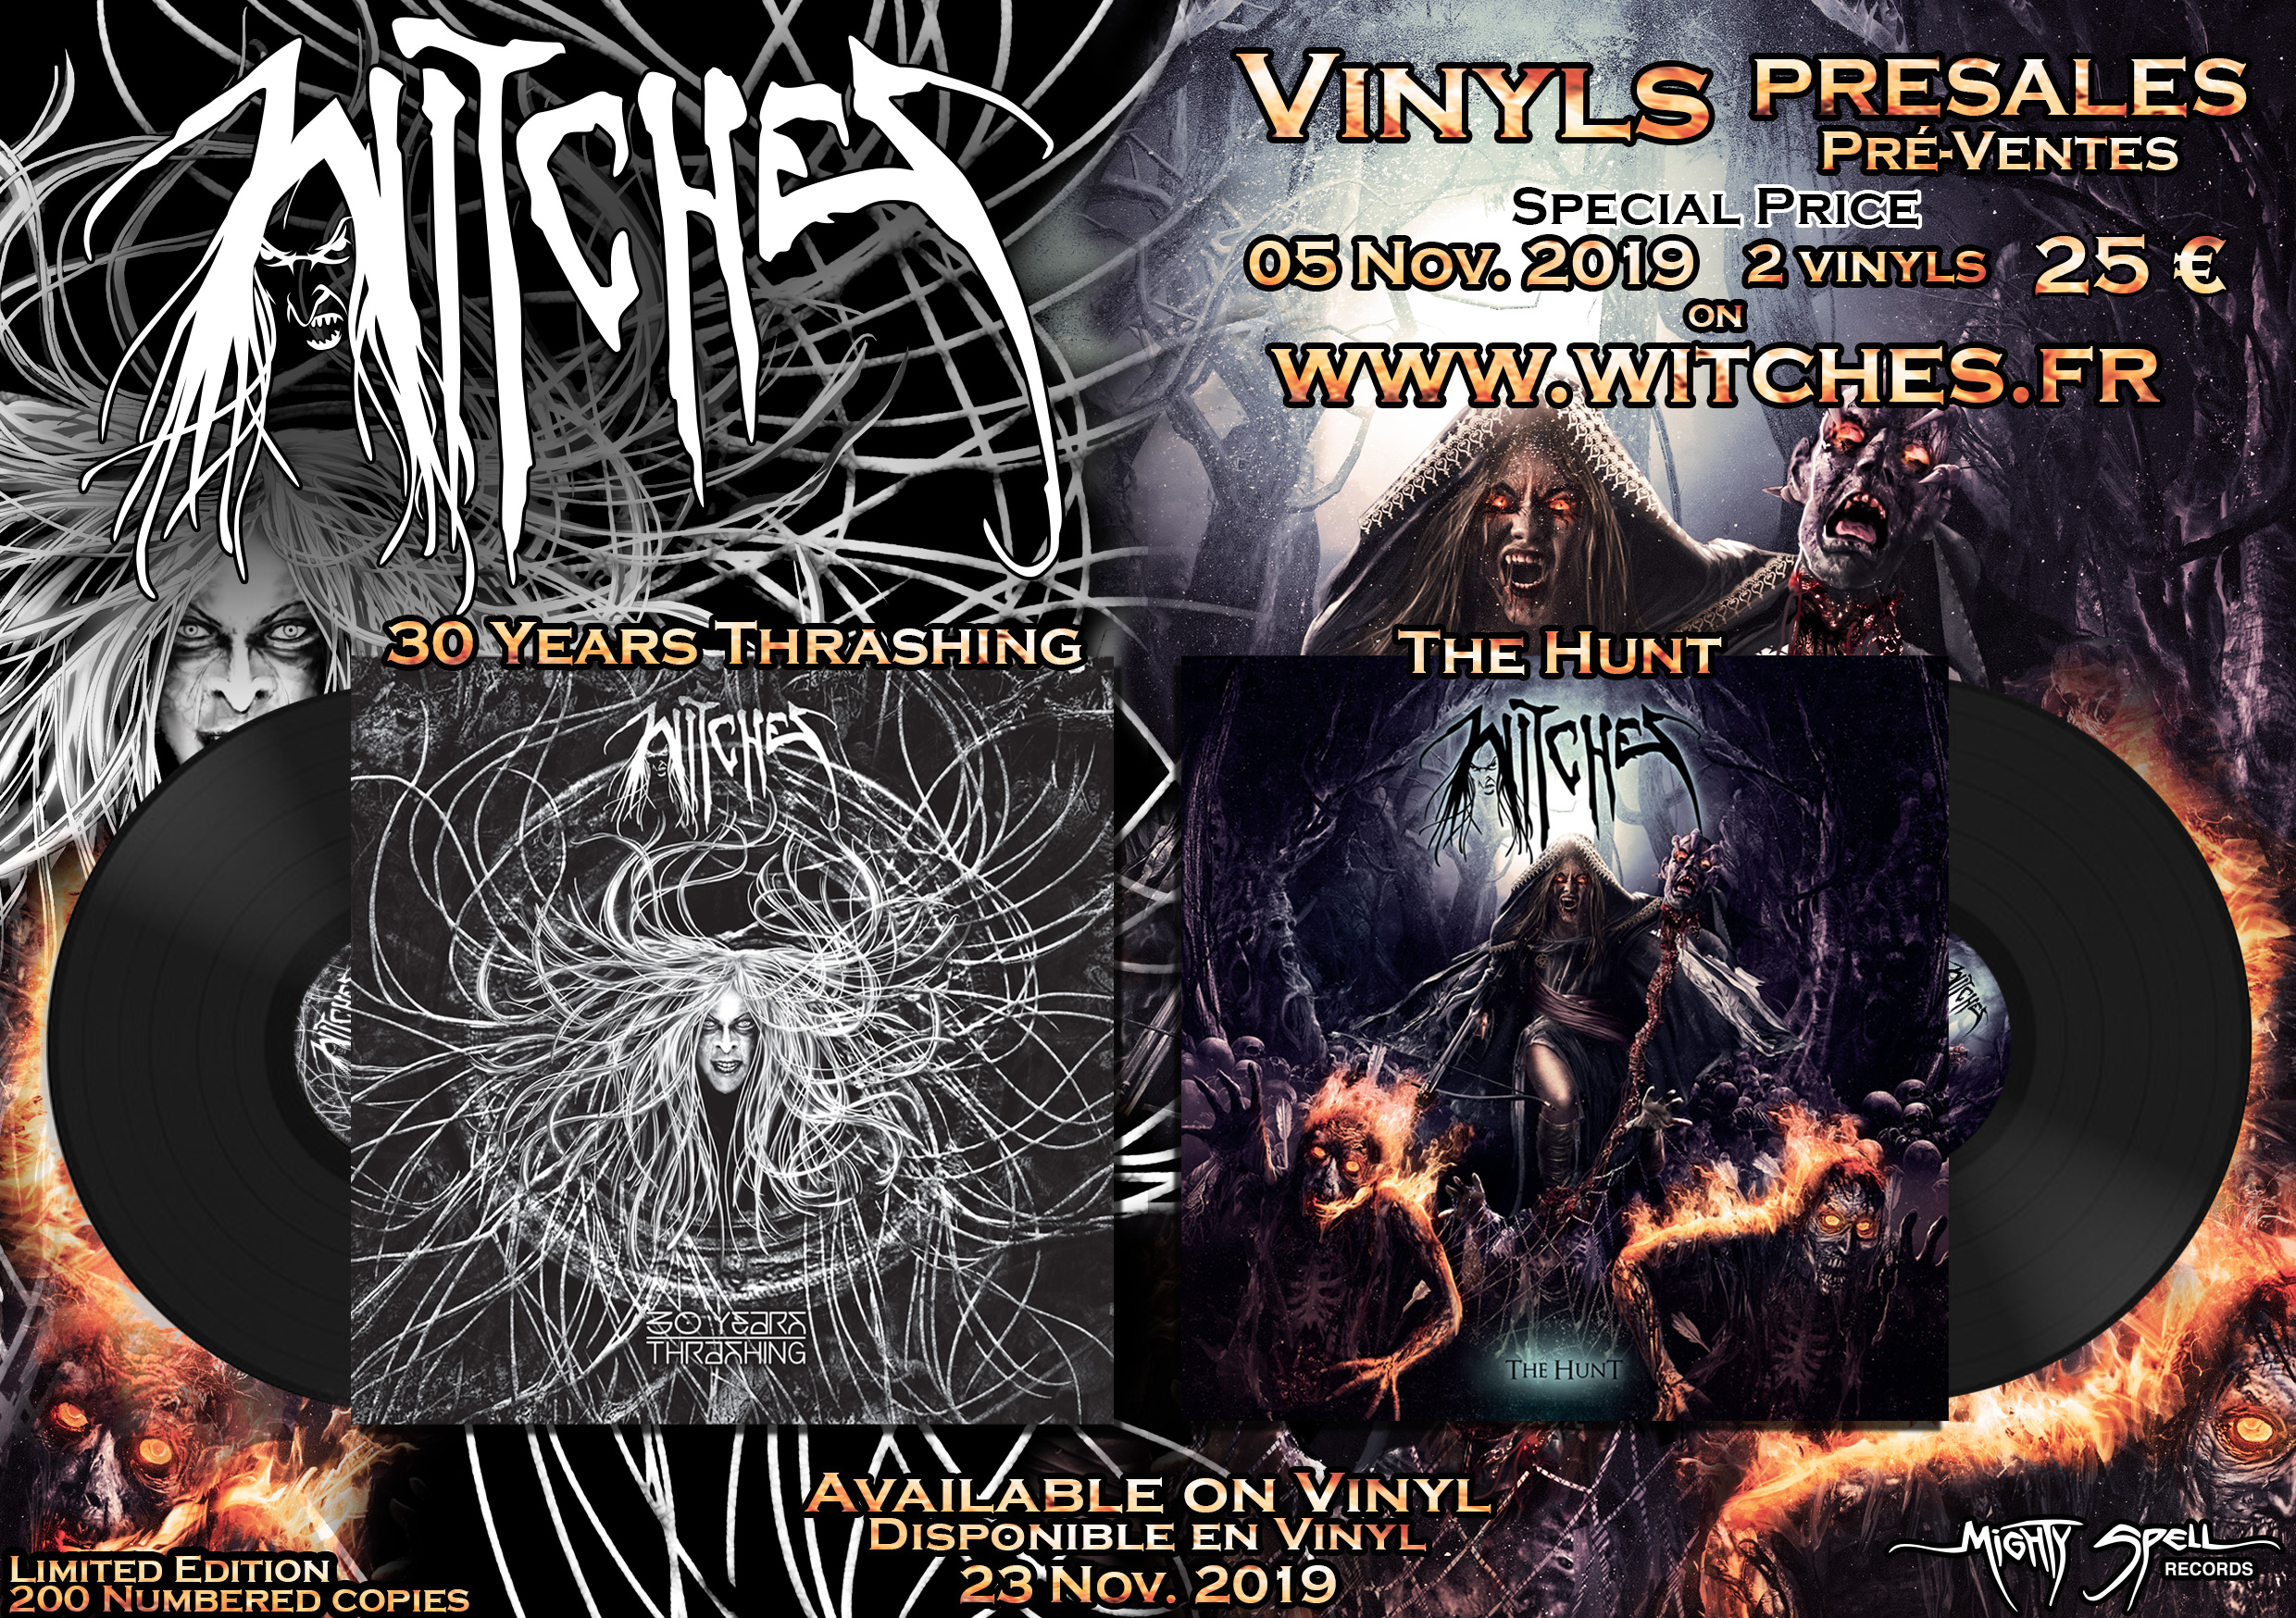 Witches Vinyls presales The Hunt 30 Years Thrashing